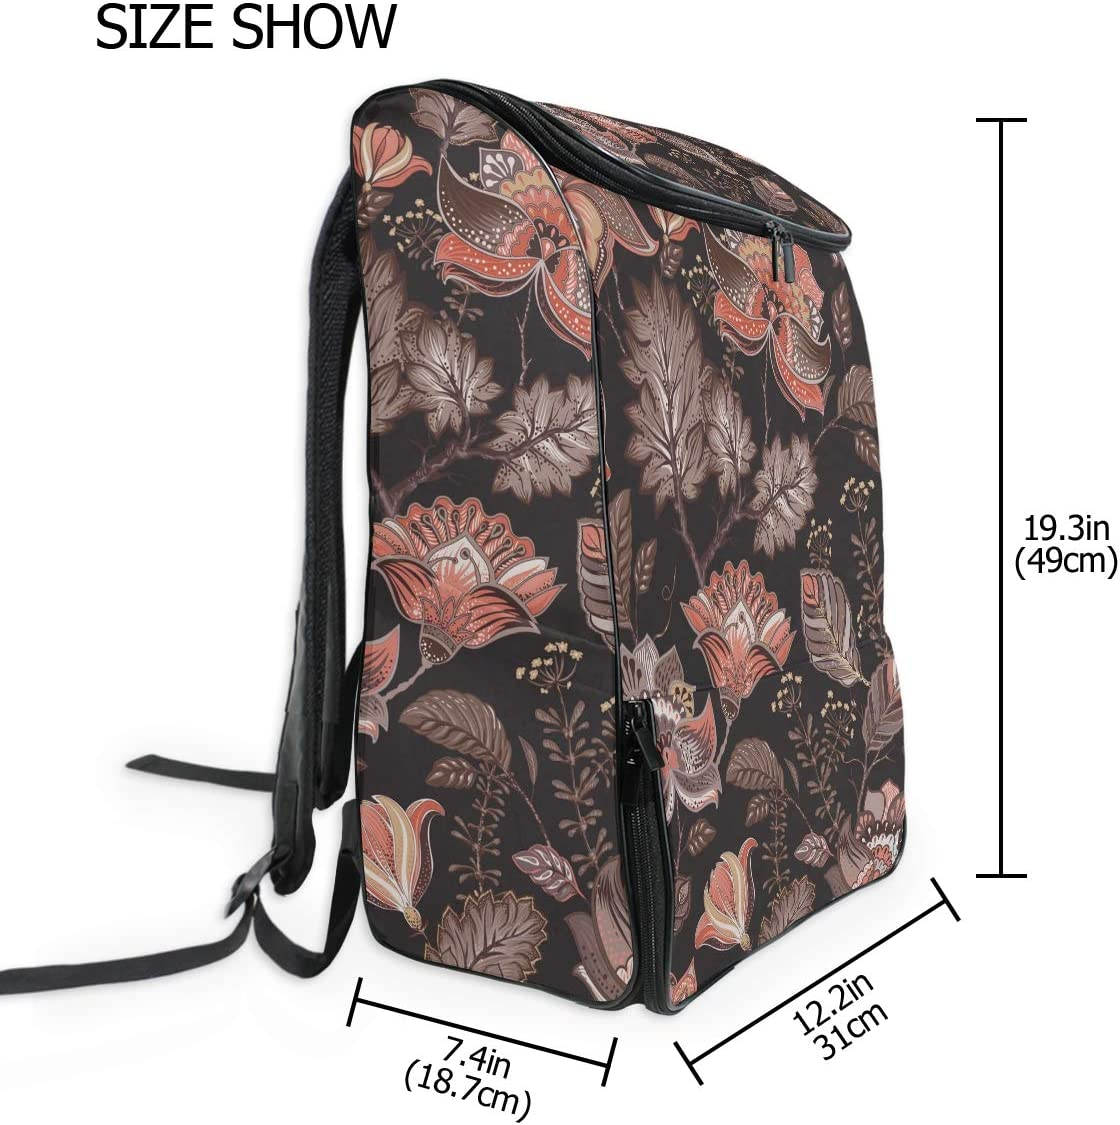 MONTOJ Travel Gear Laptop Backpack Retro Floral Pattern Carry-On Travel Backpack